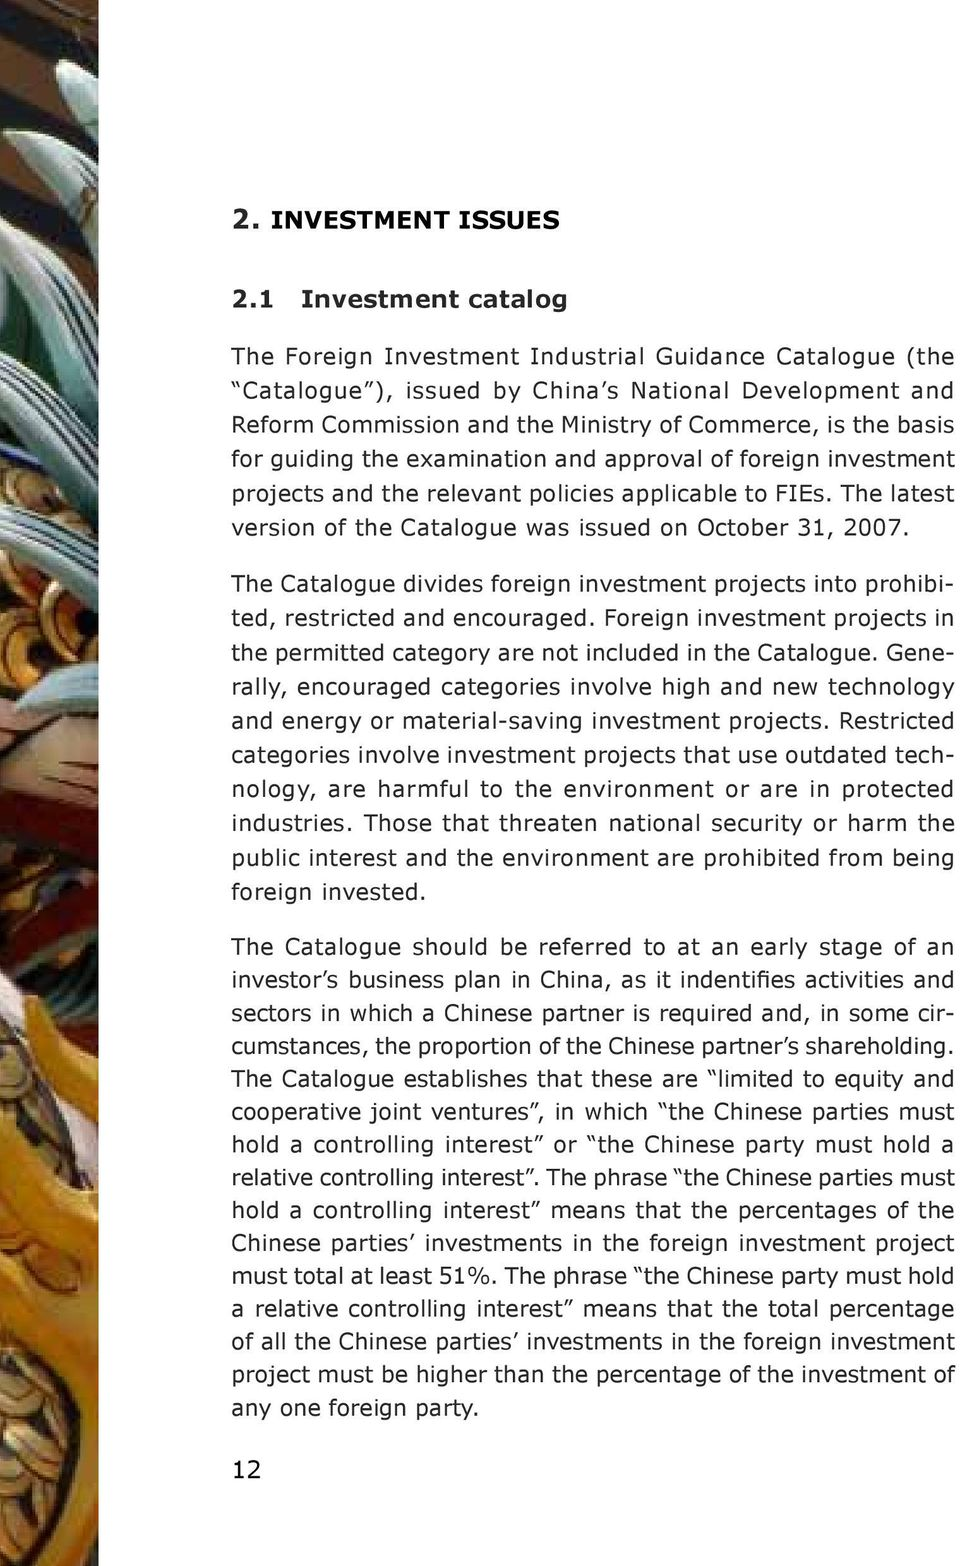 guiding the examination and approval of foreign investment projects and the relevant policies applicable to FIEs. The latest version of the Catalogue was issued on October 31, 2007.